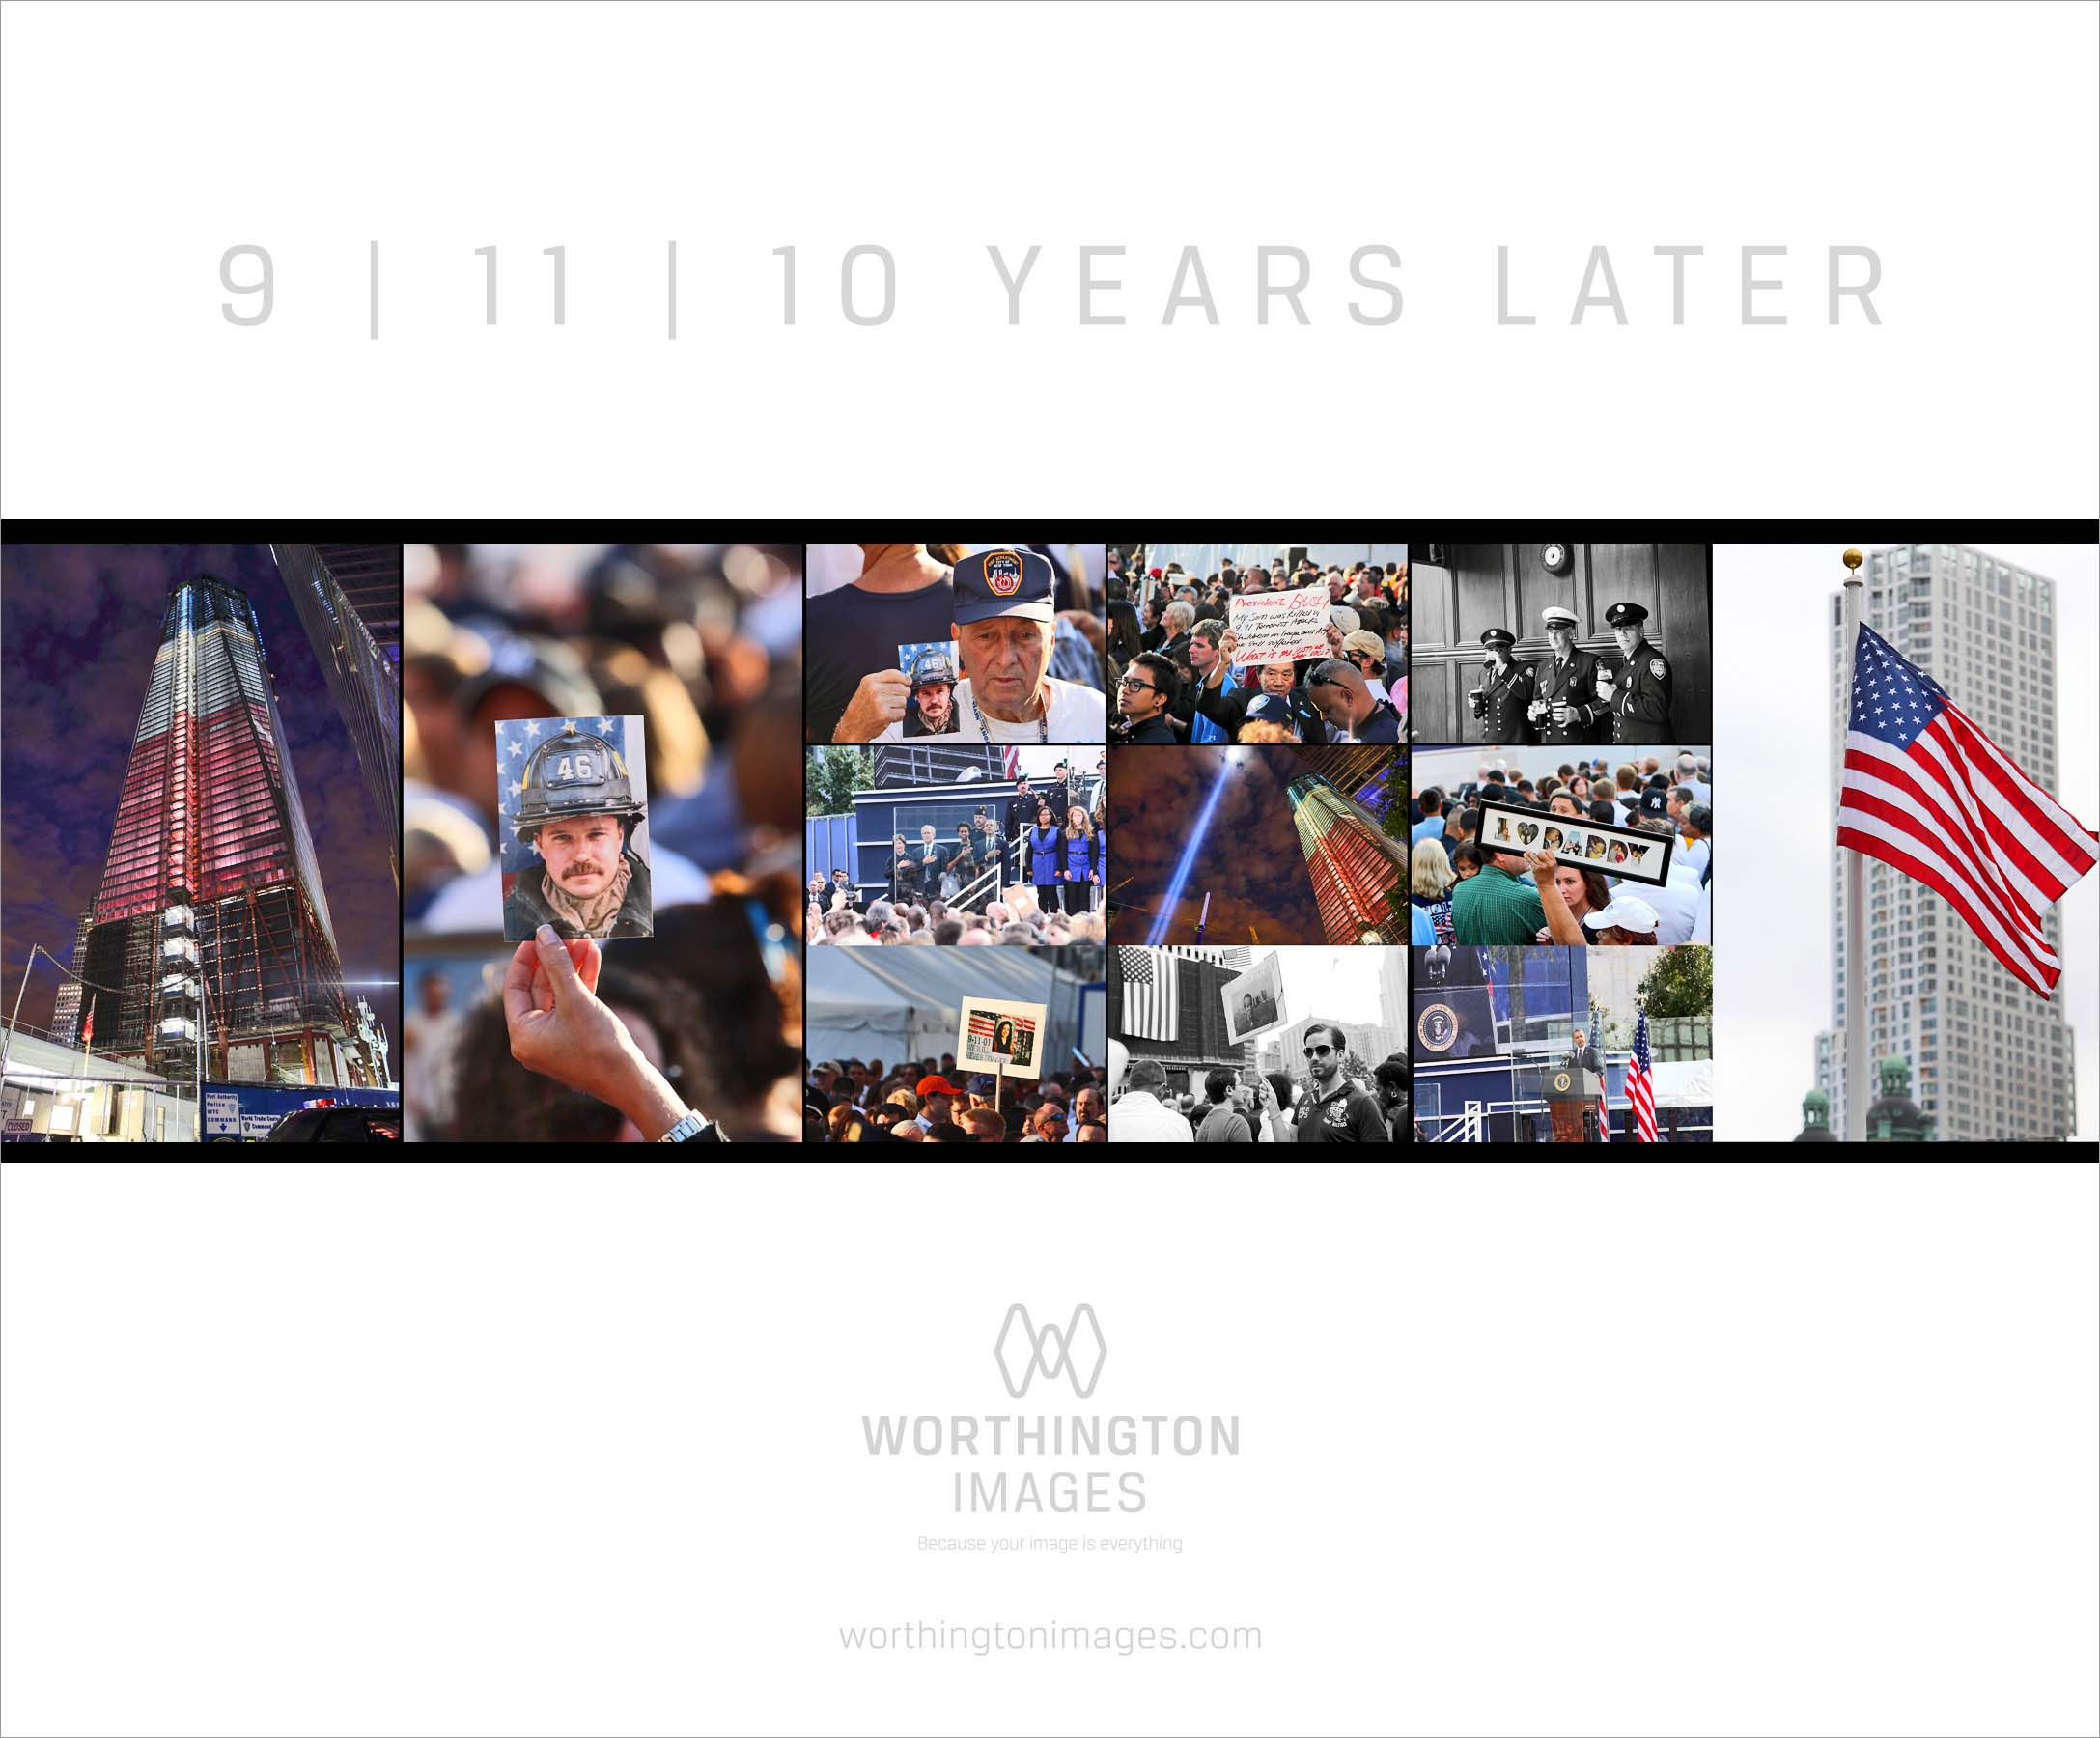 PIX OF THE WEEK - 9-11 Ten Years Later (WTC)